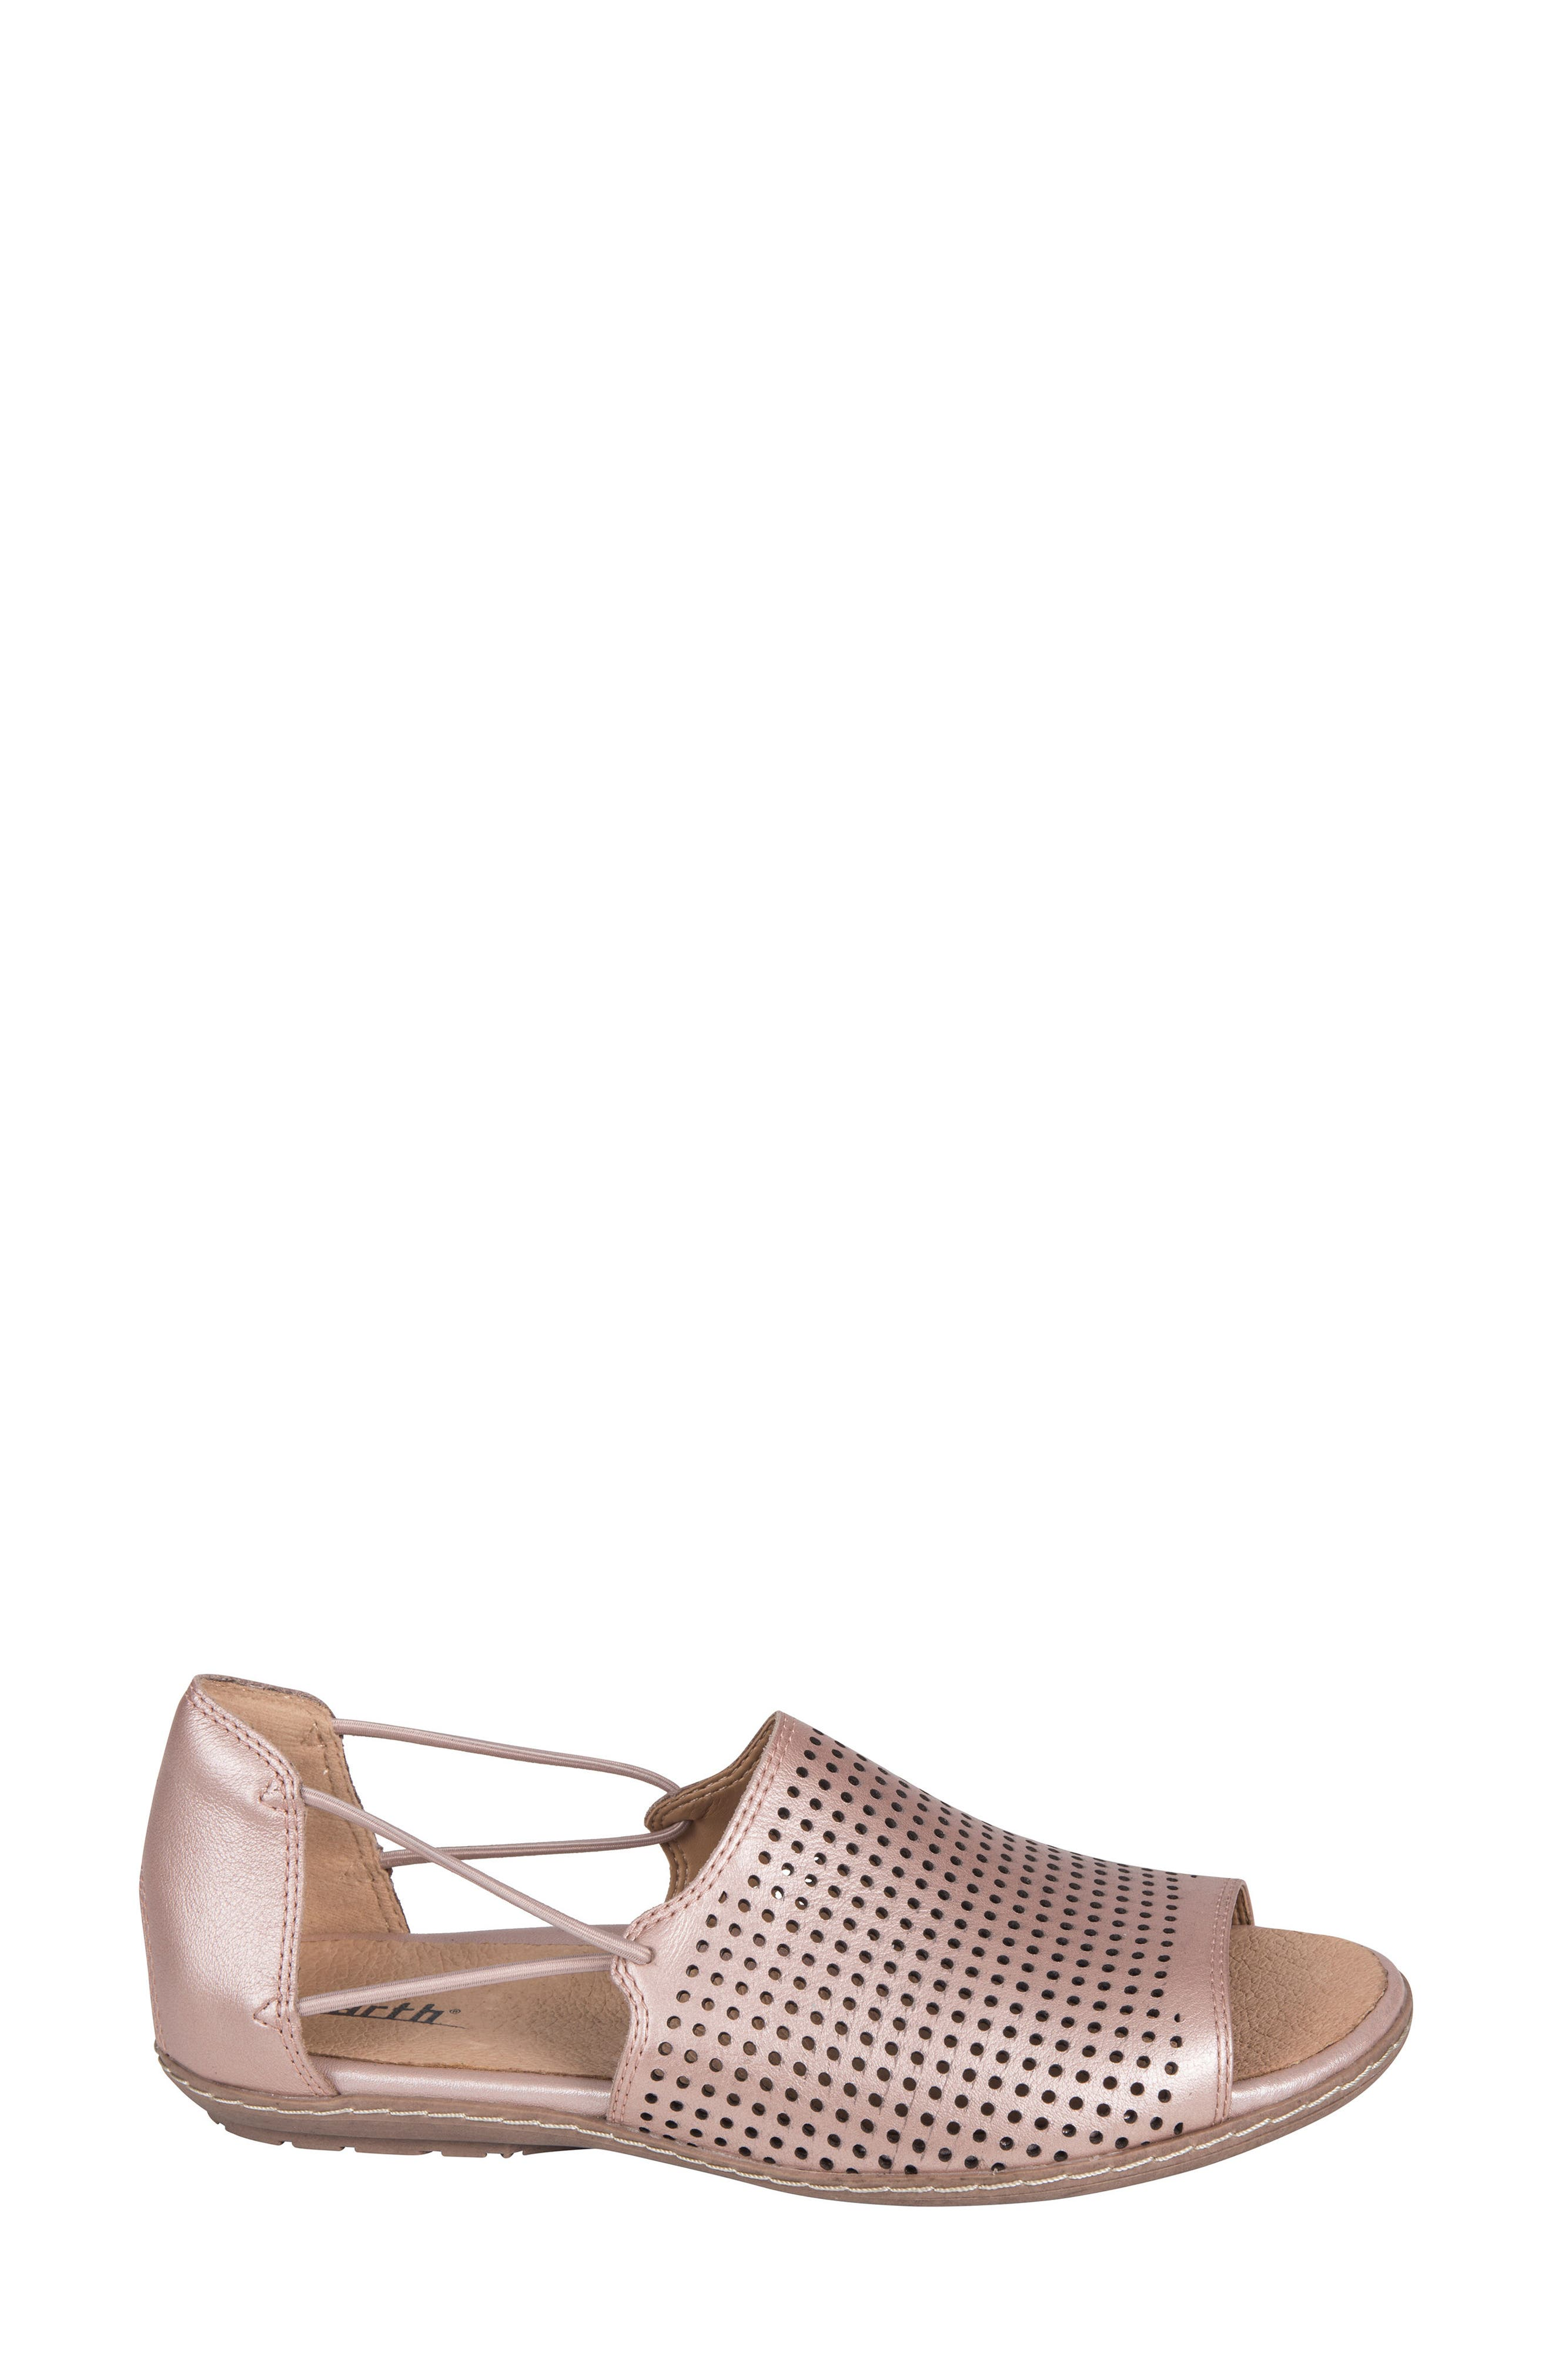 Shelly Sandal,                             Alternate thumbnail 3, color,                             BLUSH METALLIC LEATHER